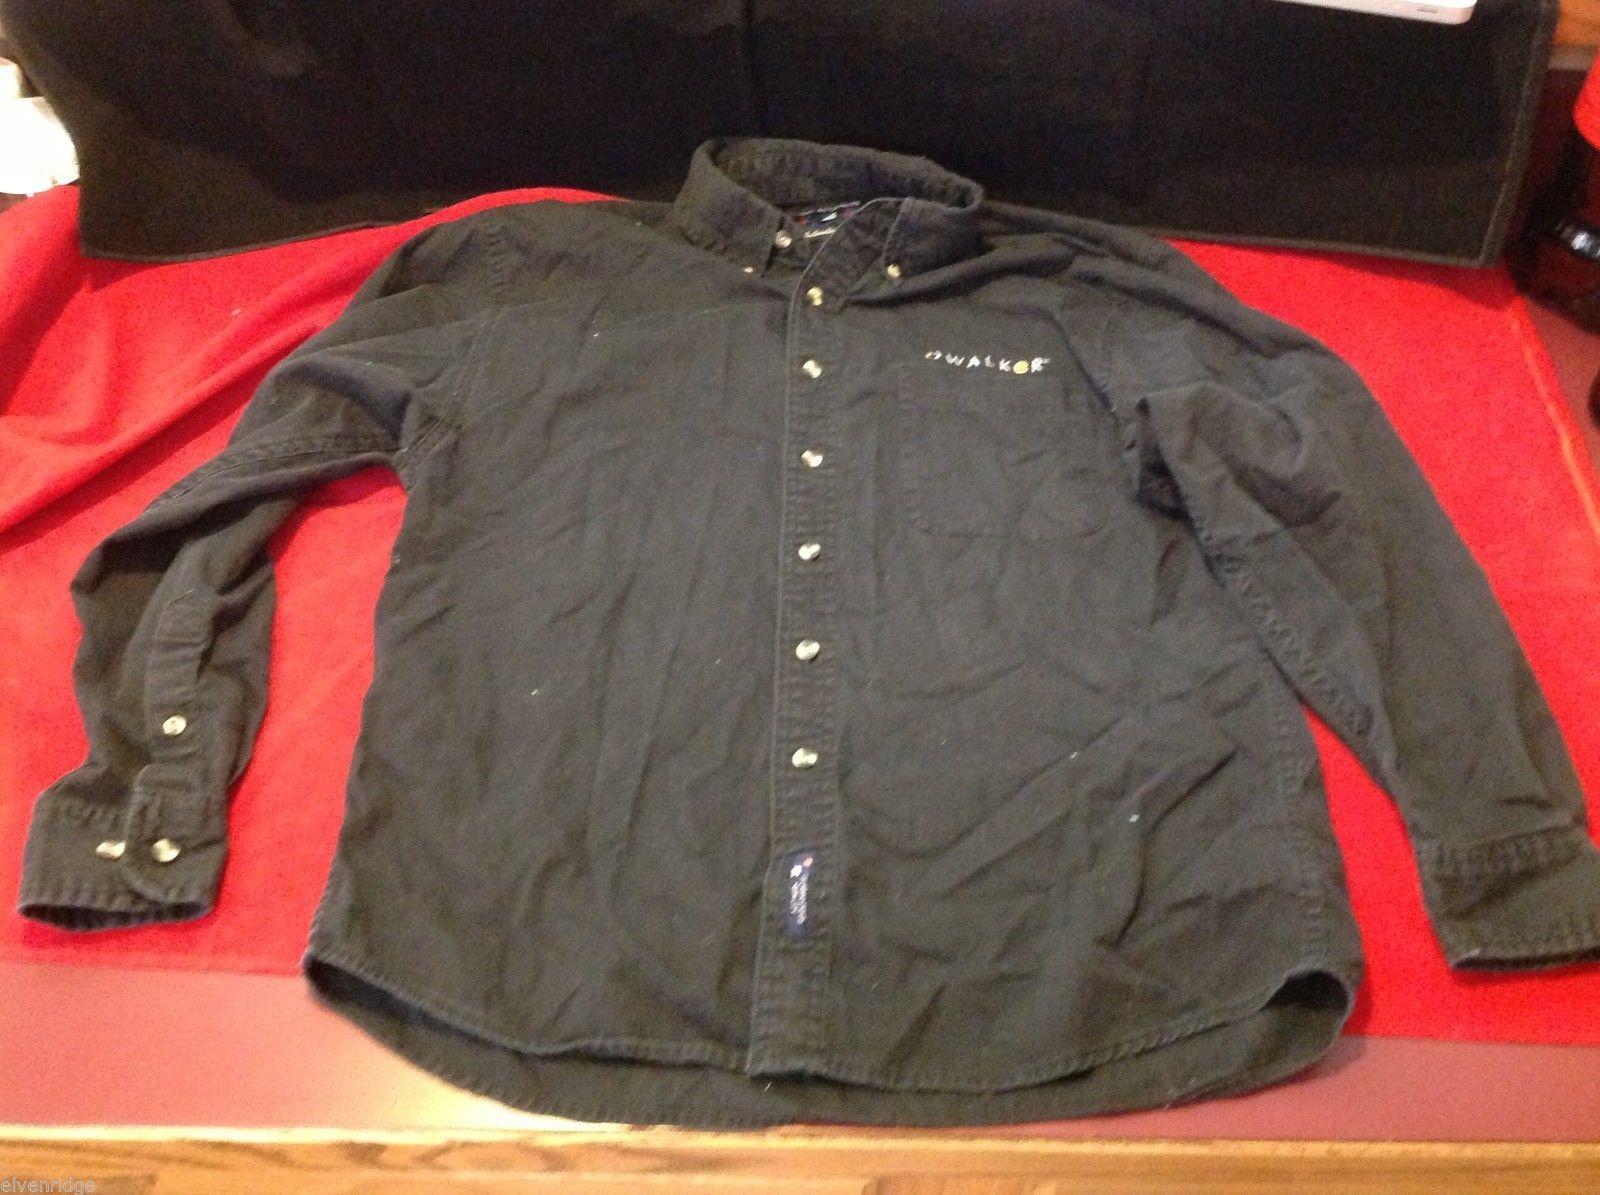 Port Authority Black collared cotton shirt embroidered with Walker name